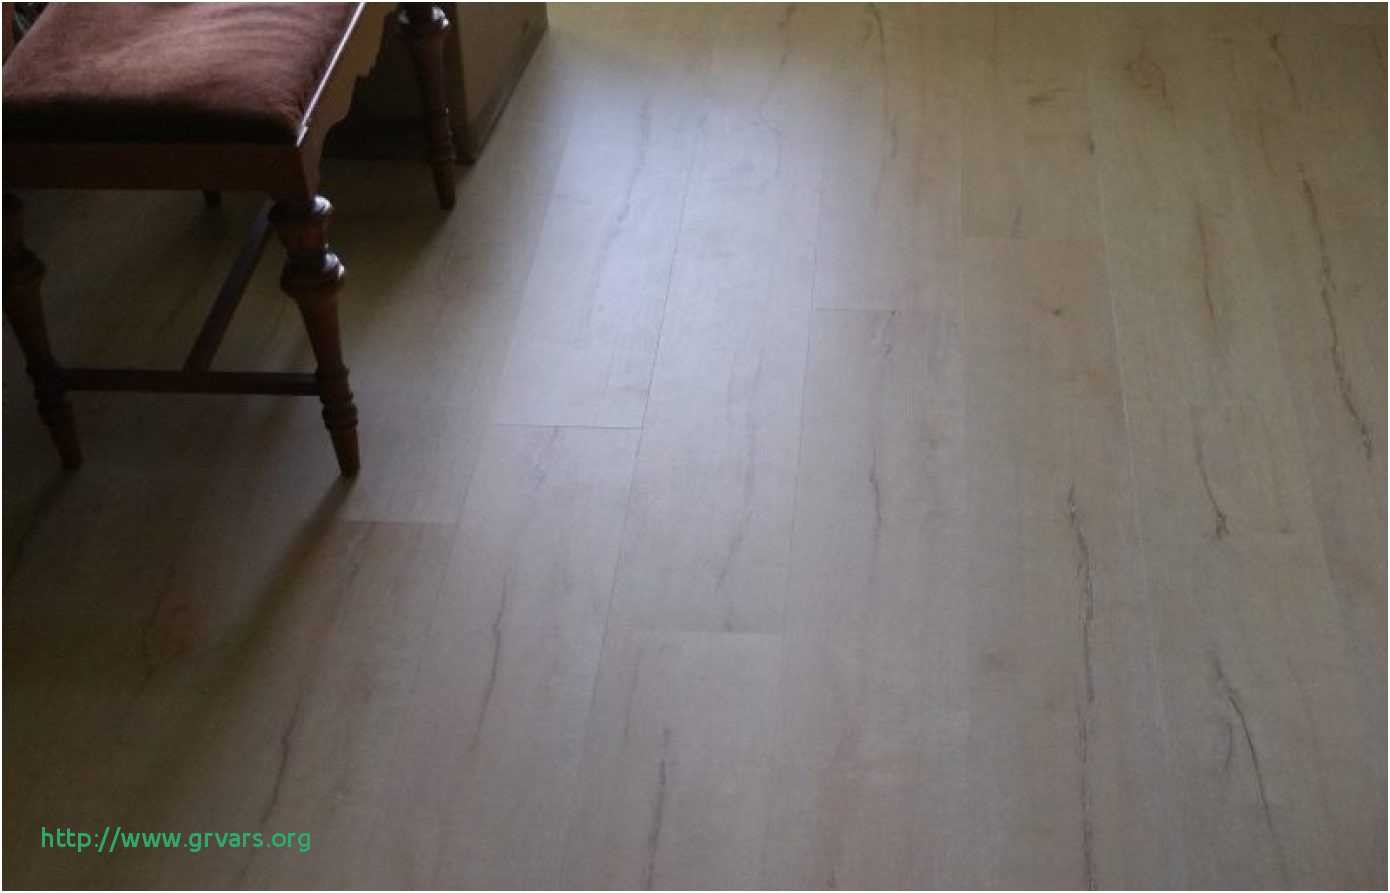 Hardwood Flooring Ontario Of 24 Beau Best Way to Polish Laminate Flooring Ideas Blog Regarding Best Way to Polish Laminate Flooring A‰lagant How to Shine Up Laminate Flooring How to Clean